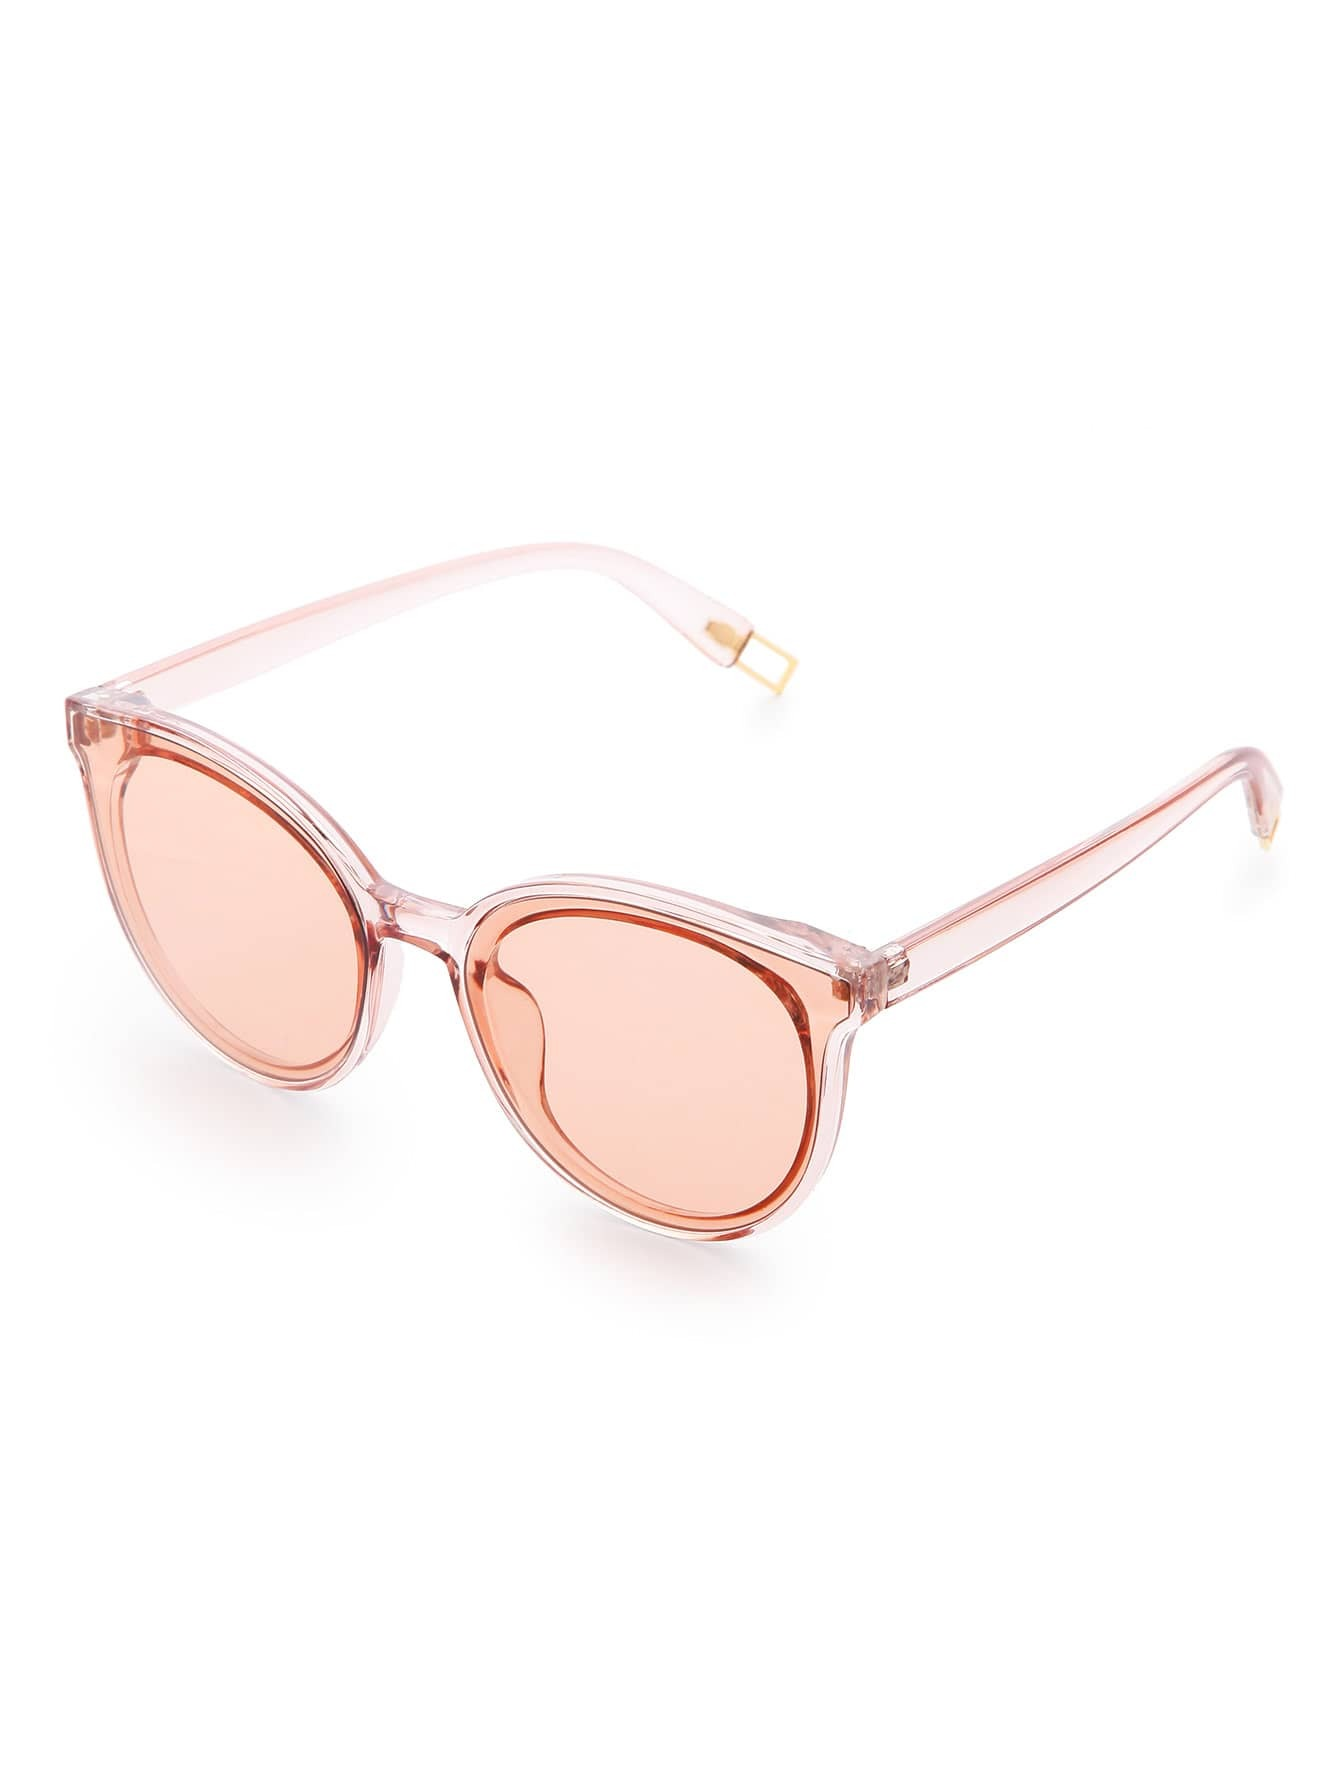 Light Brown Lens Cat Eye Sunglasses sunglass170317303